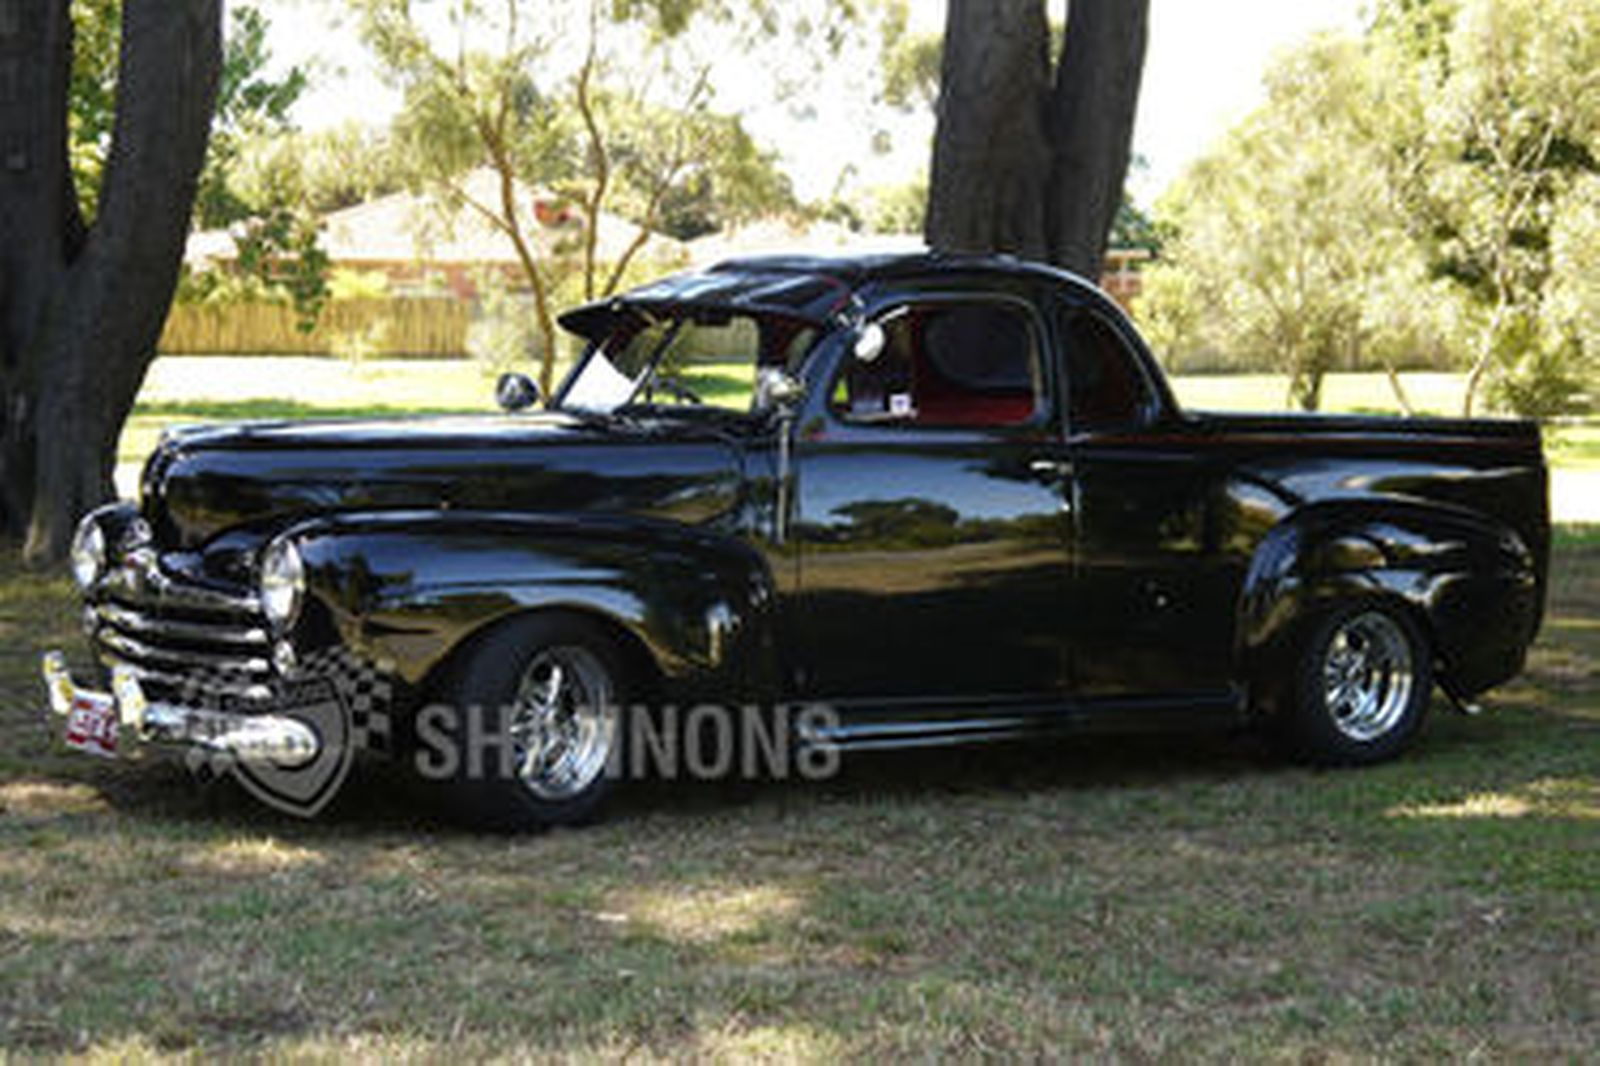 1948 Ford Pickup Hot Rod Coupe Utility Rhd Auctions Lot 36 Shannons